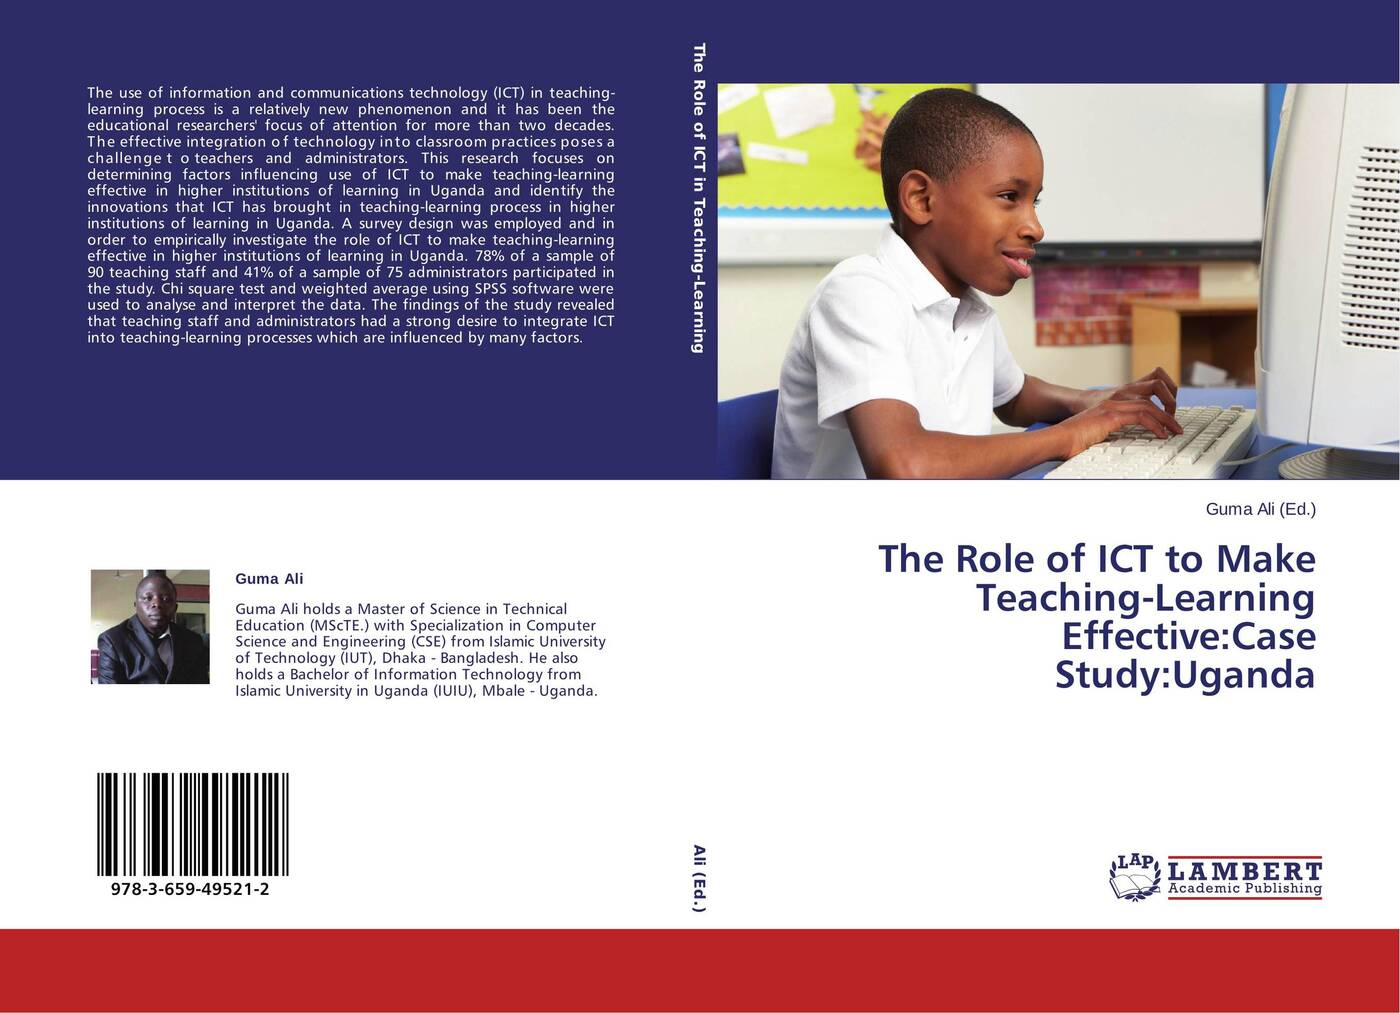 Guma Ali The Role of ICT to Make Teaching-Learning Effective:Case Study:Uganda anne hørsted new innovations in teaching and learning in higher education